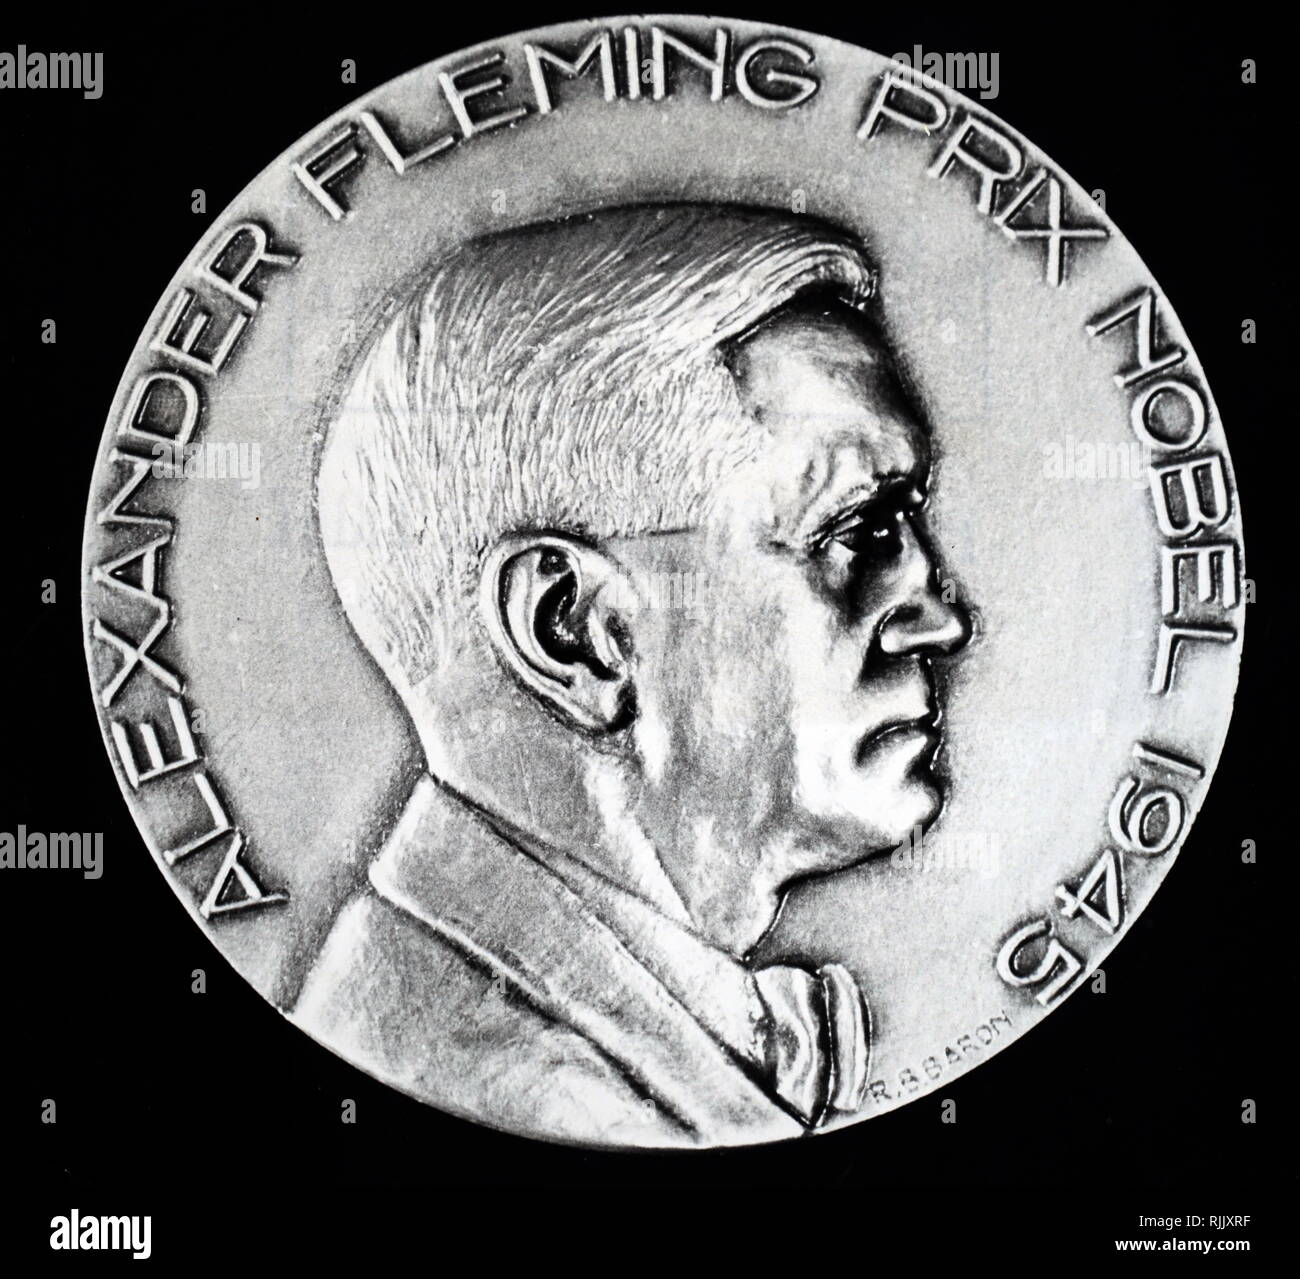 A medal commemorating Alexander Fleming's Nobel Prize win in 1945. Alexander Fleming (1881-1955) a Scottish physician, microbiologist, and pharmacologist. Dated 20th century - Stock Image